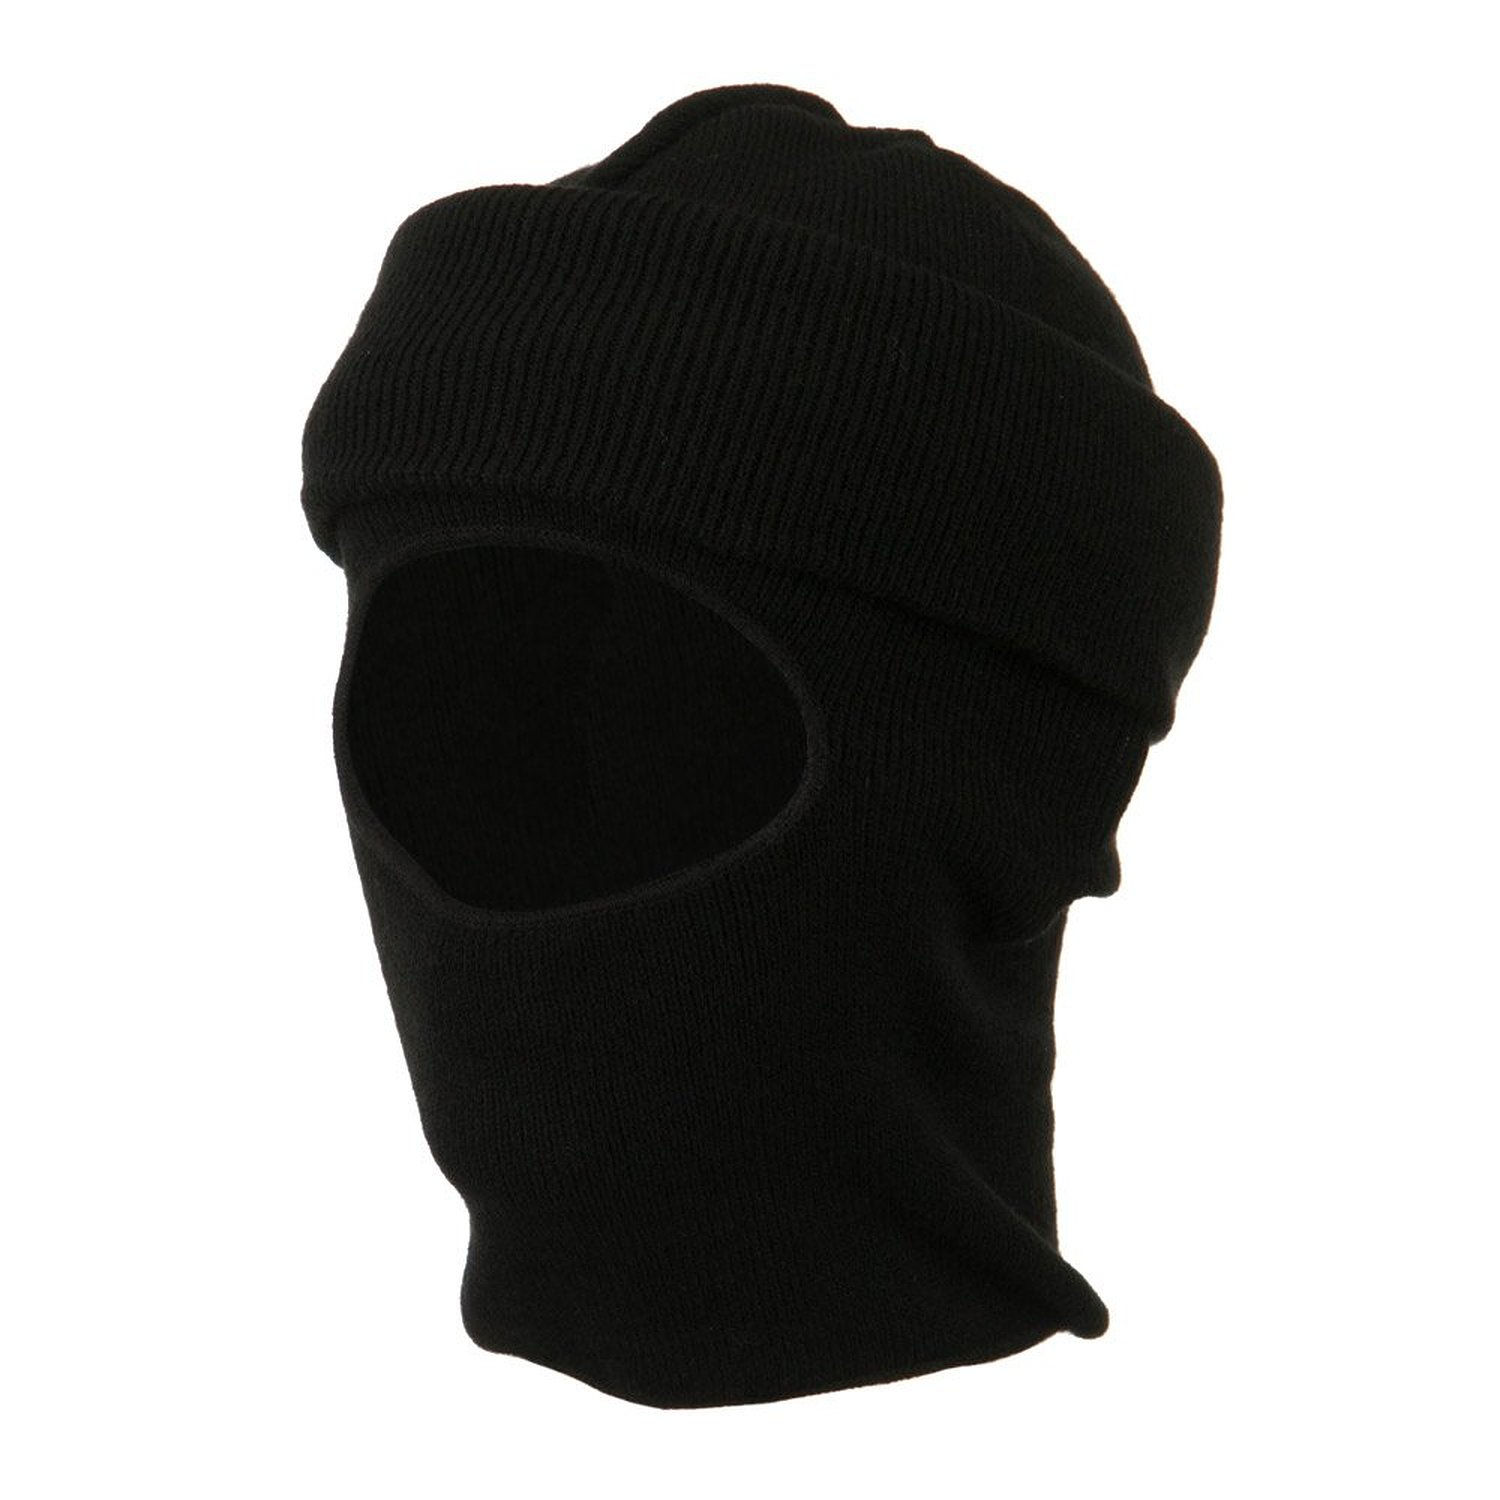 517038df491 Get Quotations · Cuff One Hole Ski Mask - Black